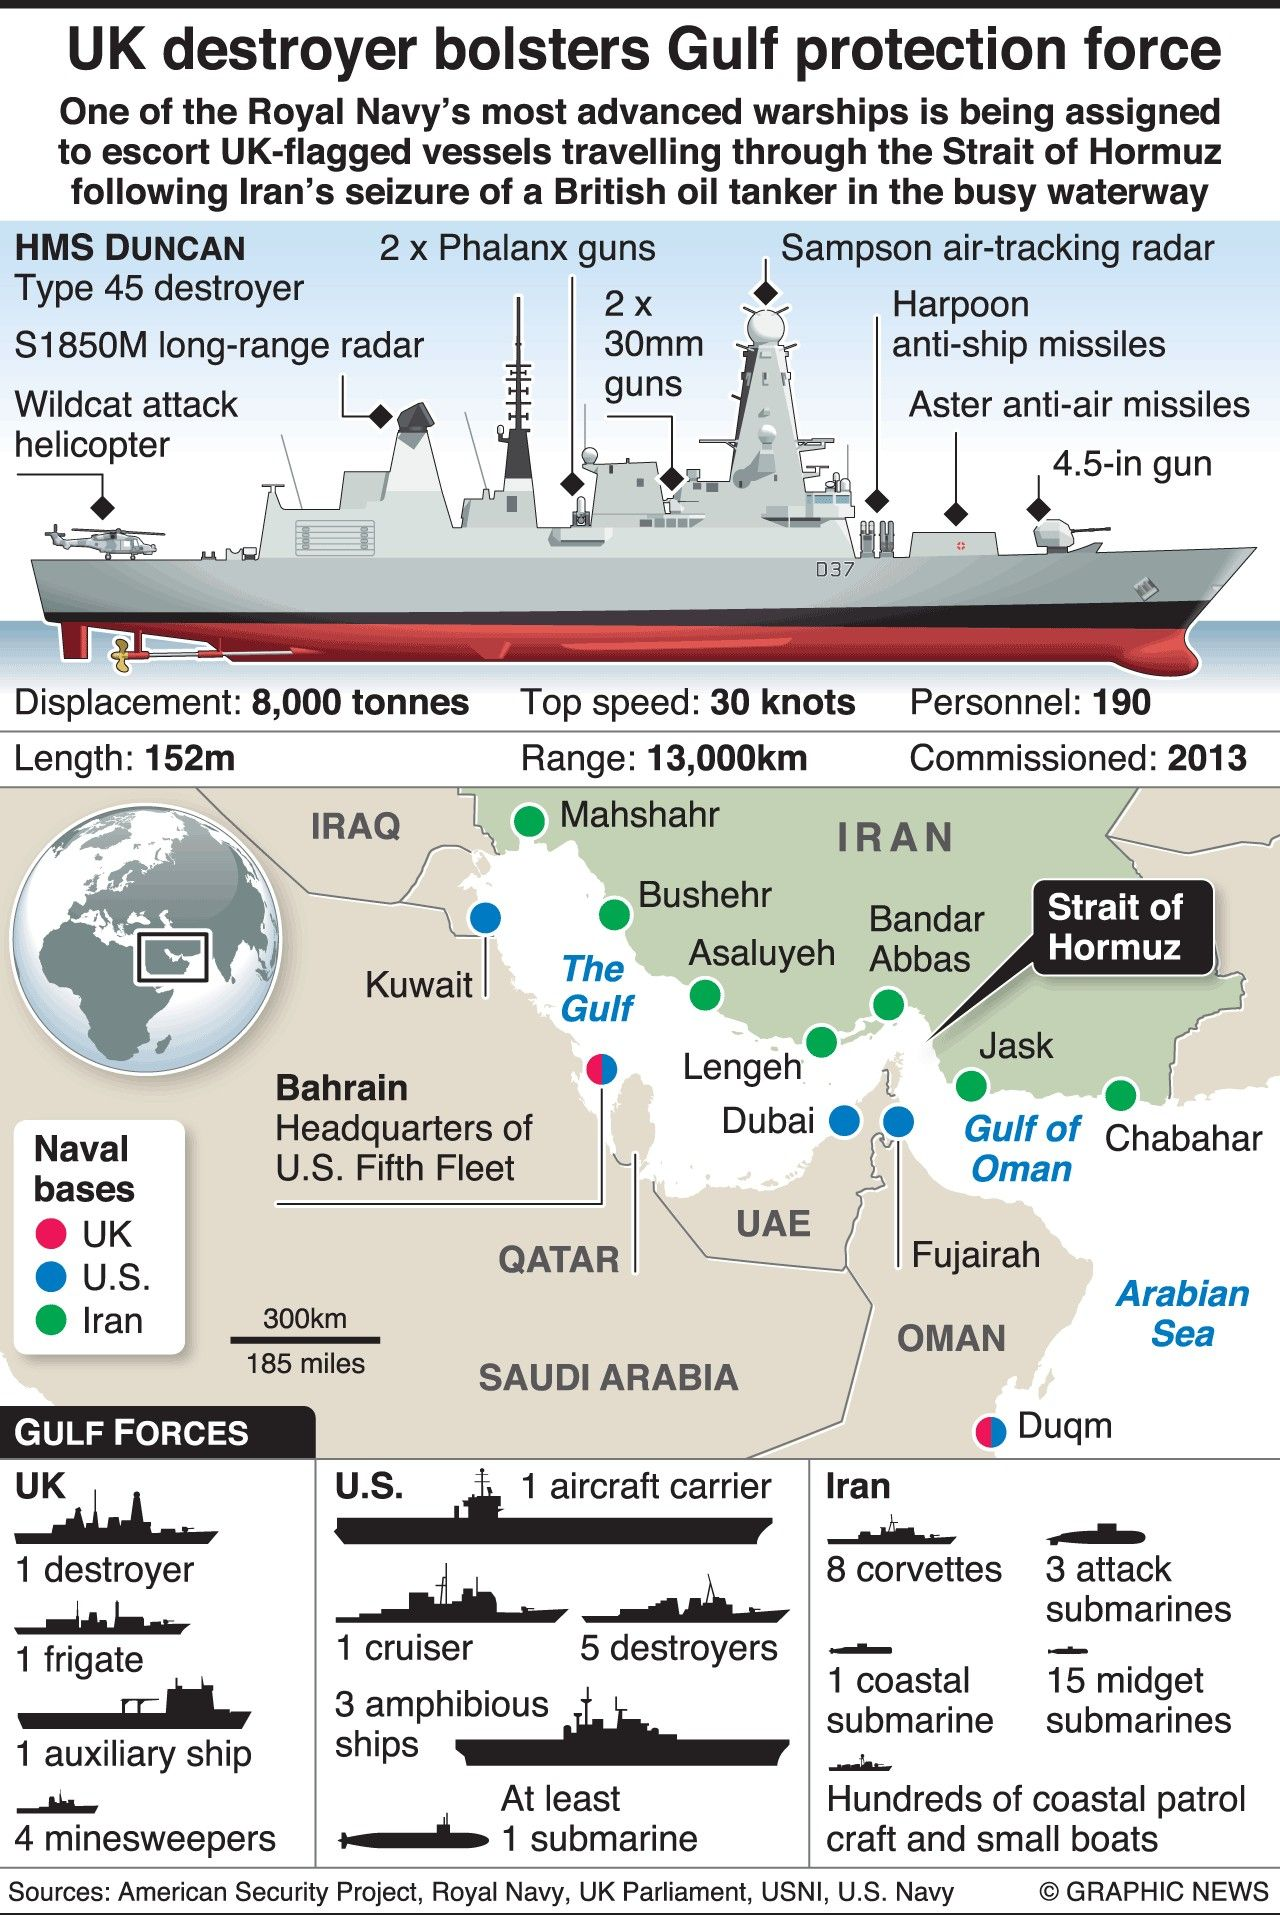 Pin By Radialv On Military Infographic Royal Navy Submarine Royal Navy Ships Uk Navy